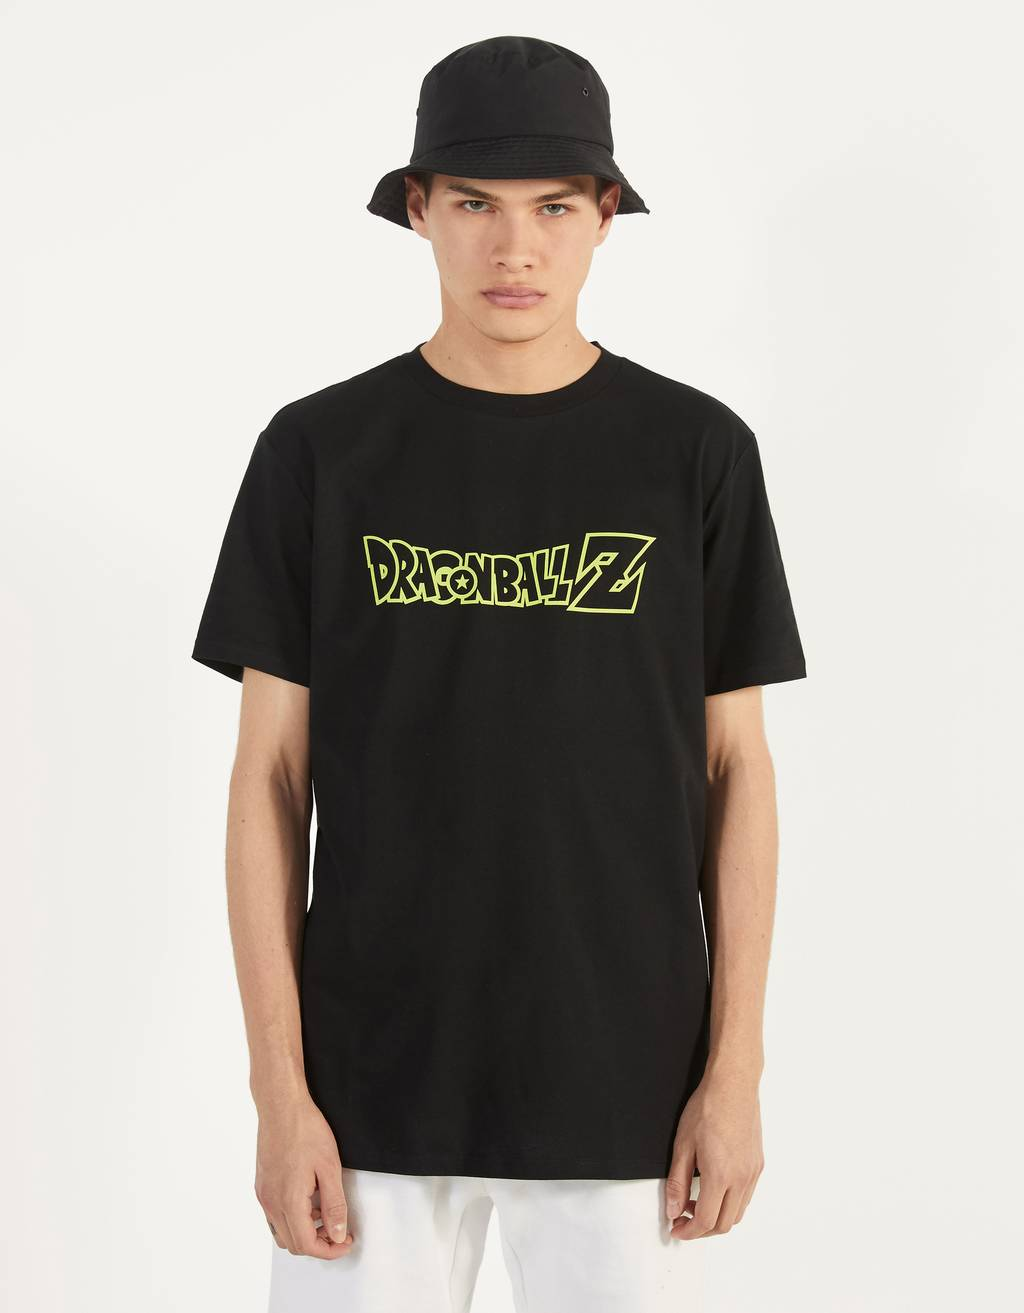 Maglietta Dragon Ball Z x Bershka